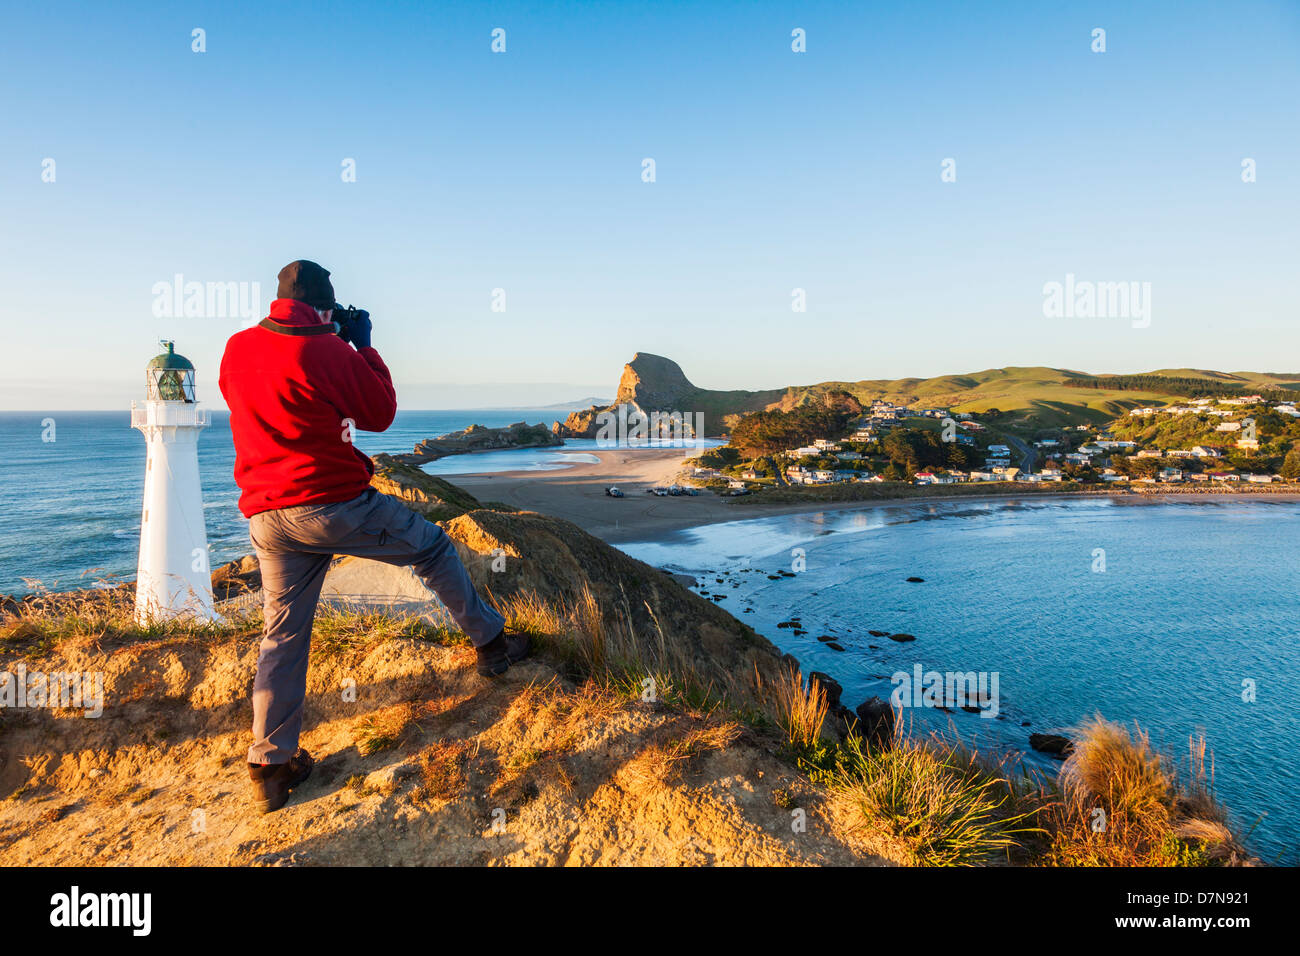 Photographer at Castlepoint Lighthouse, Wairarapa, New Zealand. - Stock Image